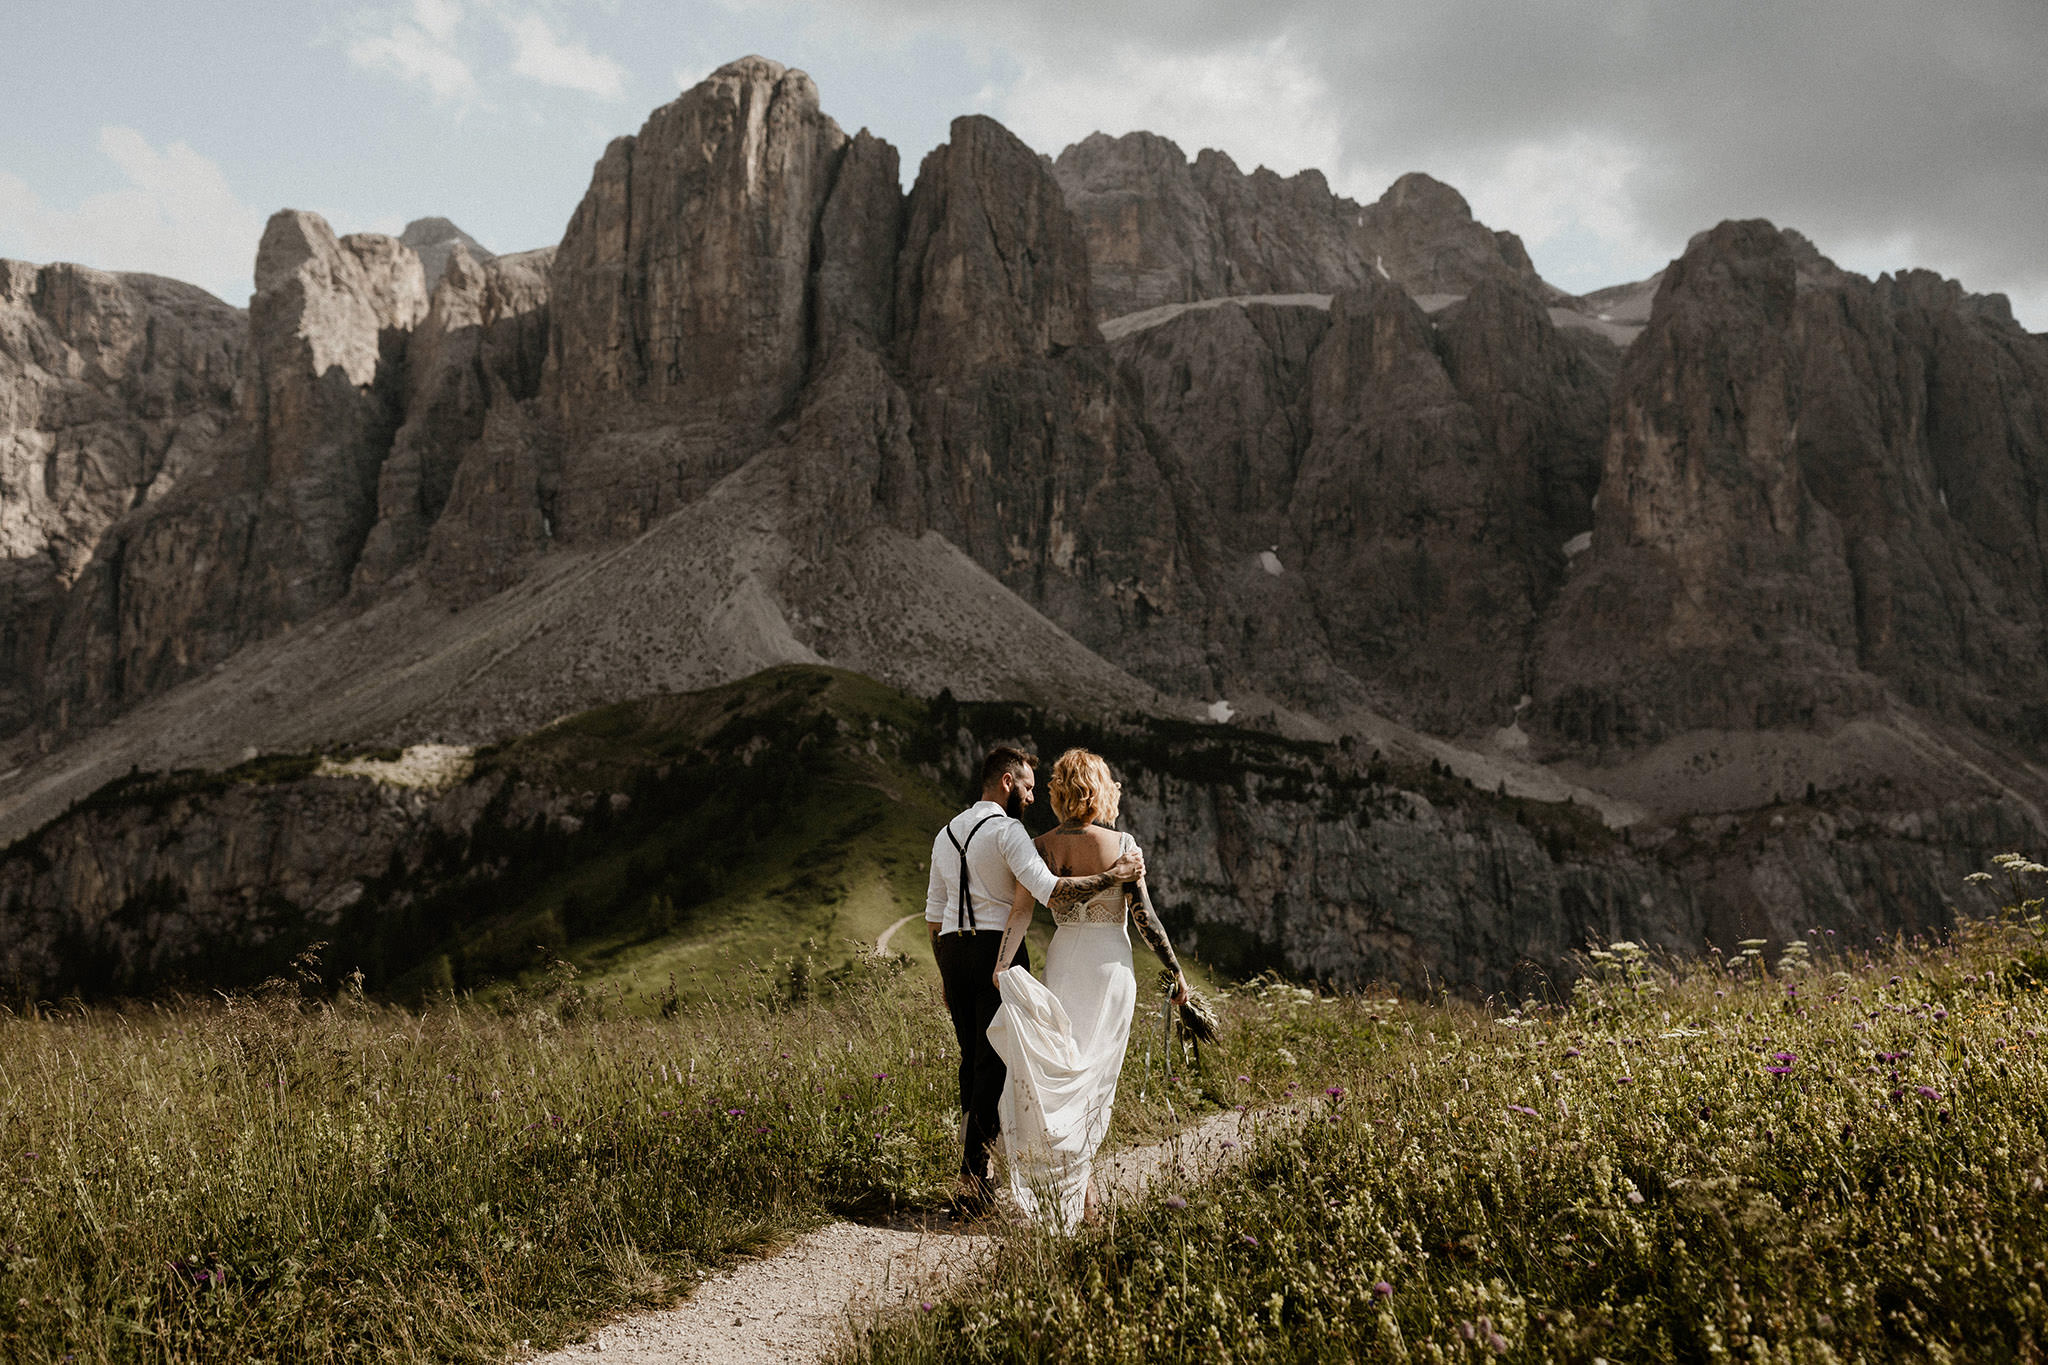 An freshly married couple are walking intimately beneath the mountains of Passo Gardena in the alpine Dolomites of Italy